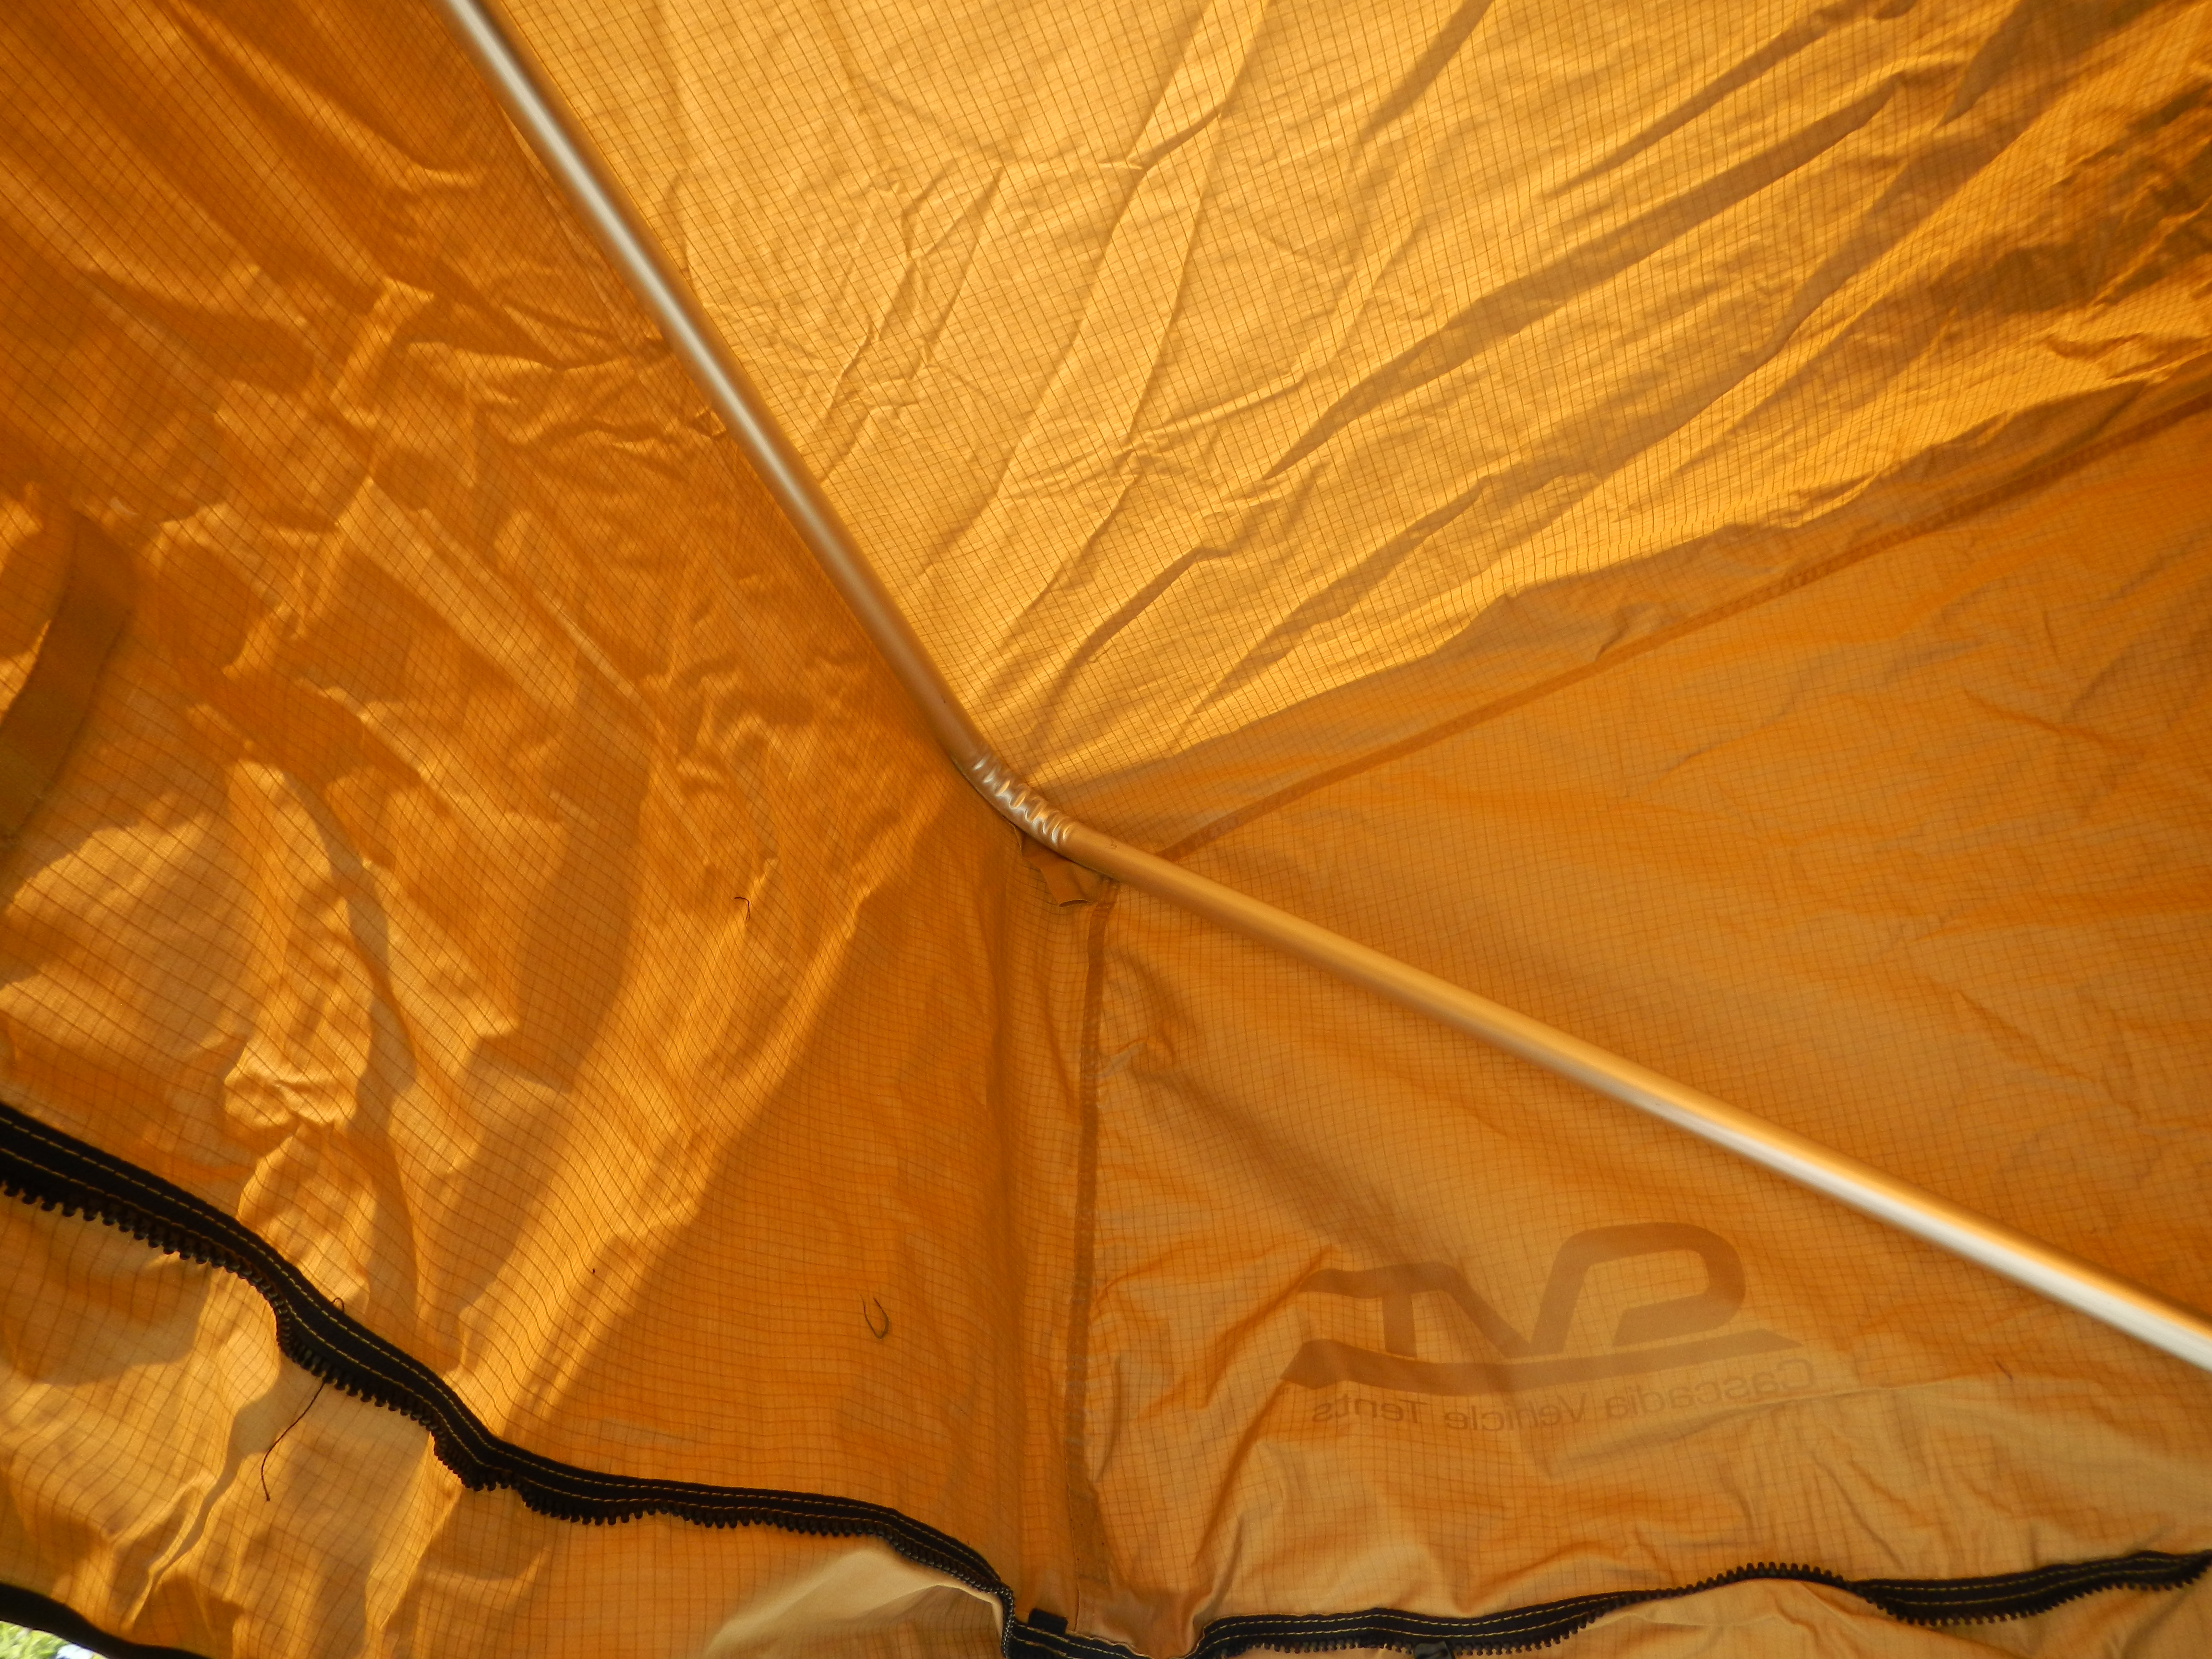 Next up letu0027s have a look at the fabric used for the majority of the tent. The Summit series is 100g heavier than the non-Summit series and this difference ... & Standard vs Summit Series CVT Tents u2013 The Nooblanders